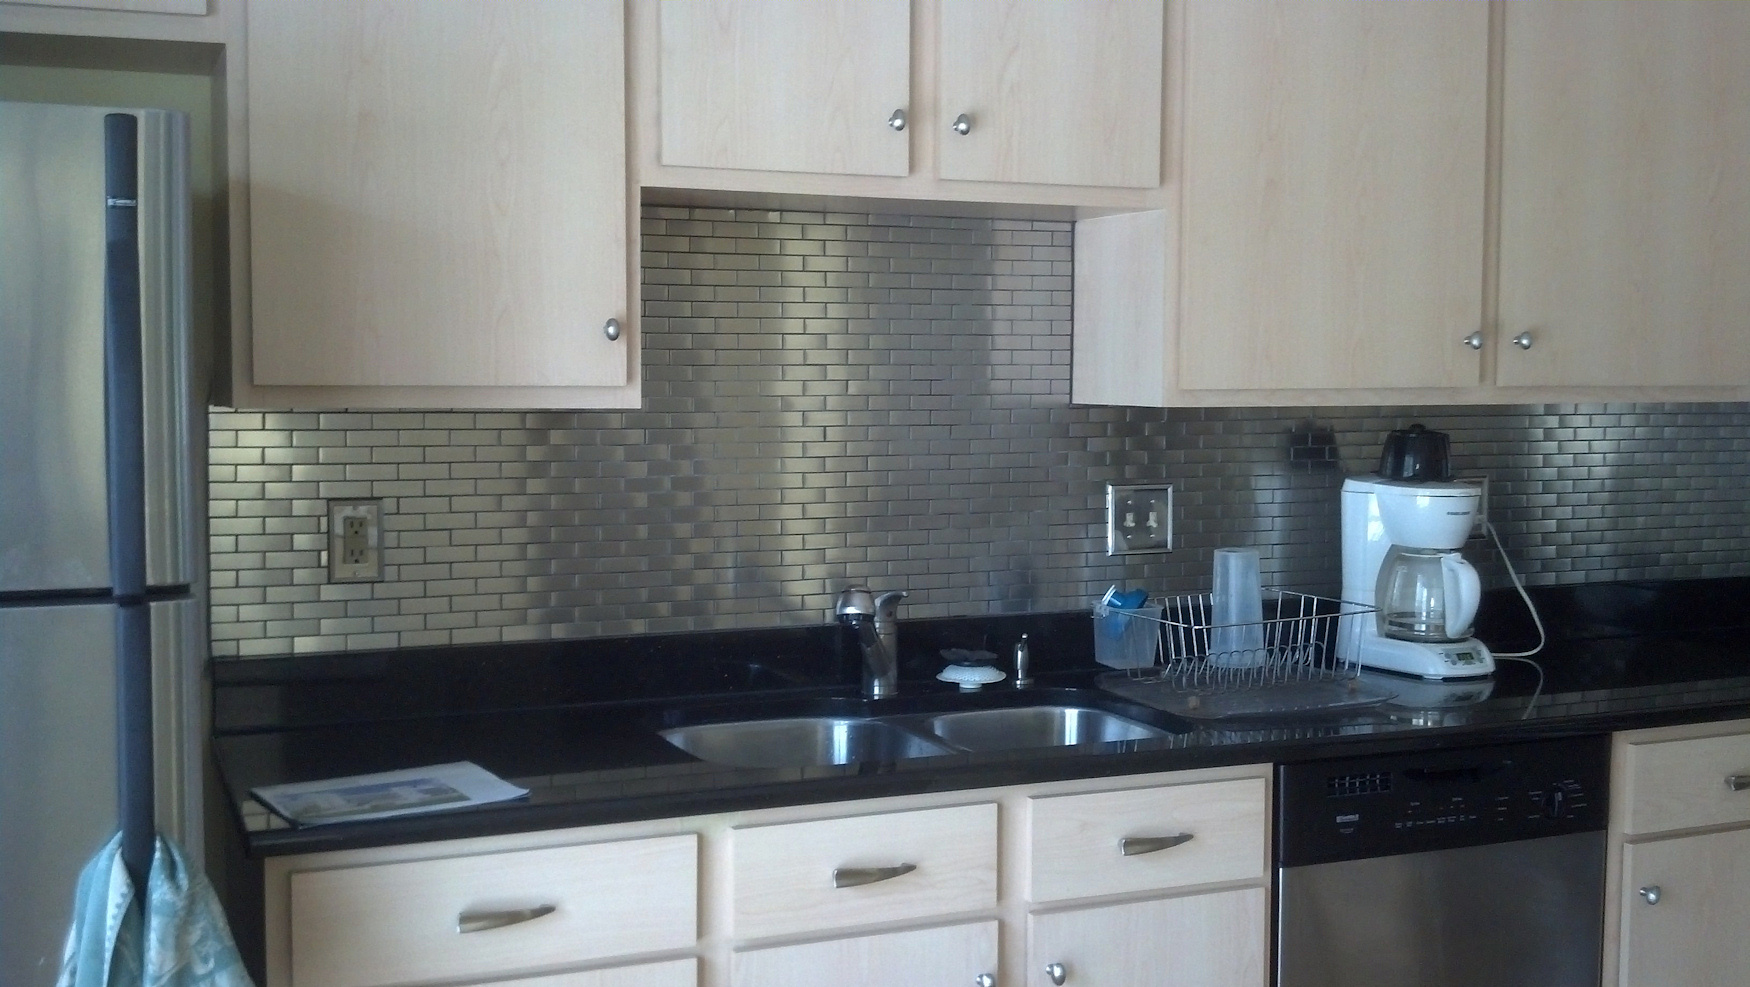 Stainless Steel Subway Tile Kitchen Backsplash